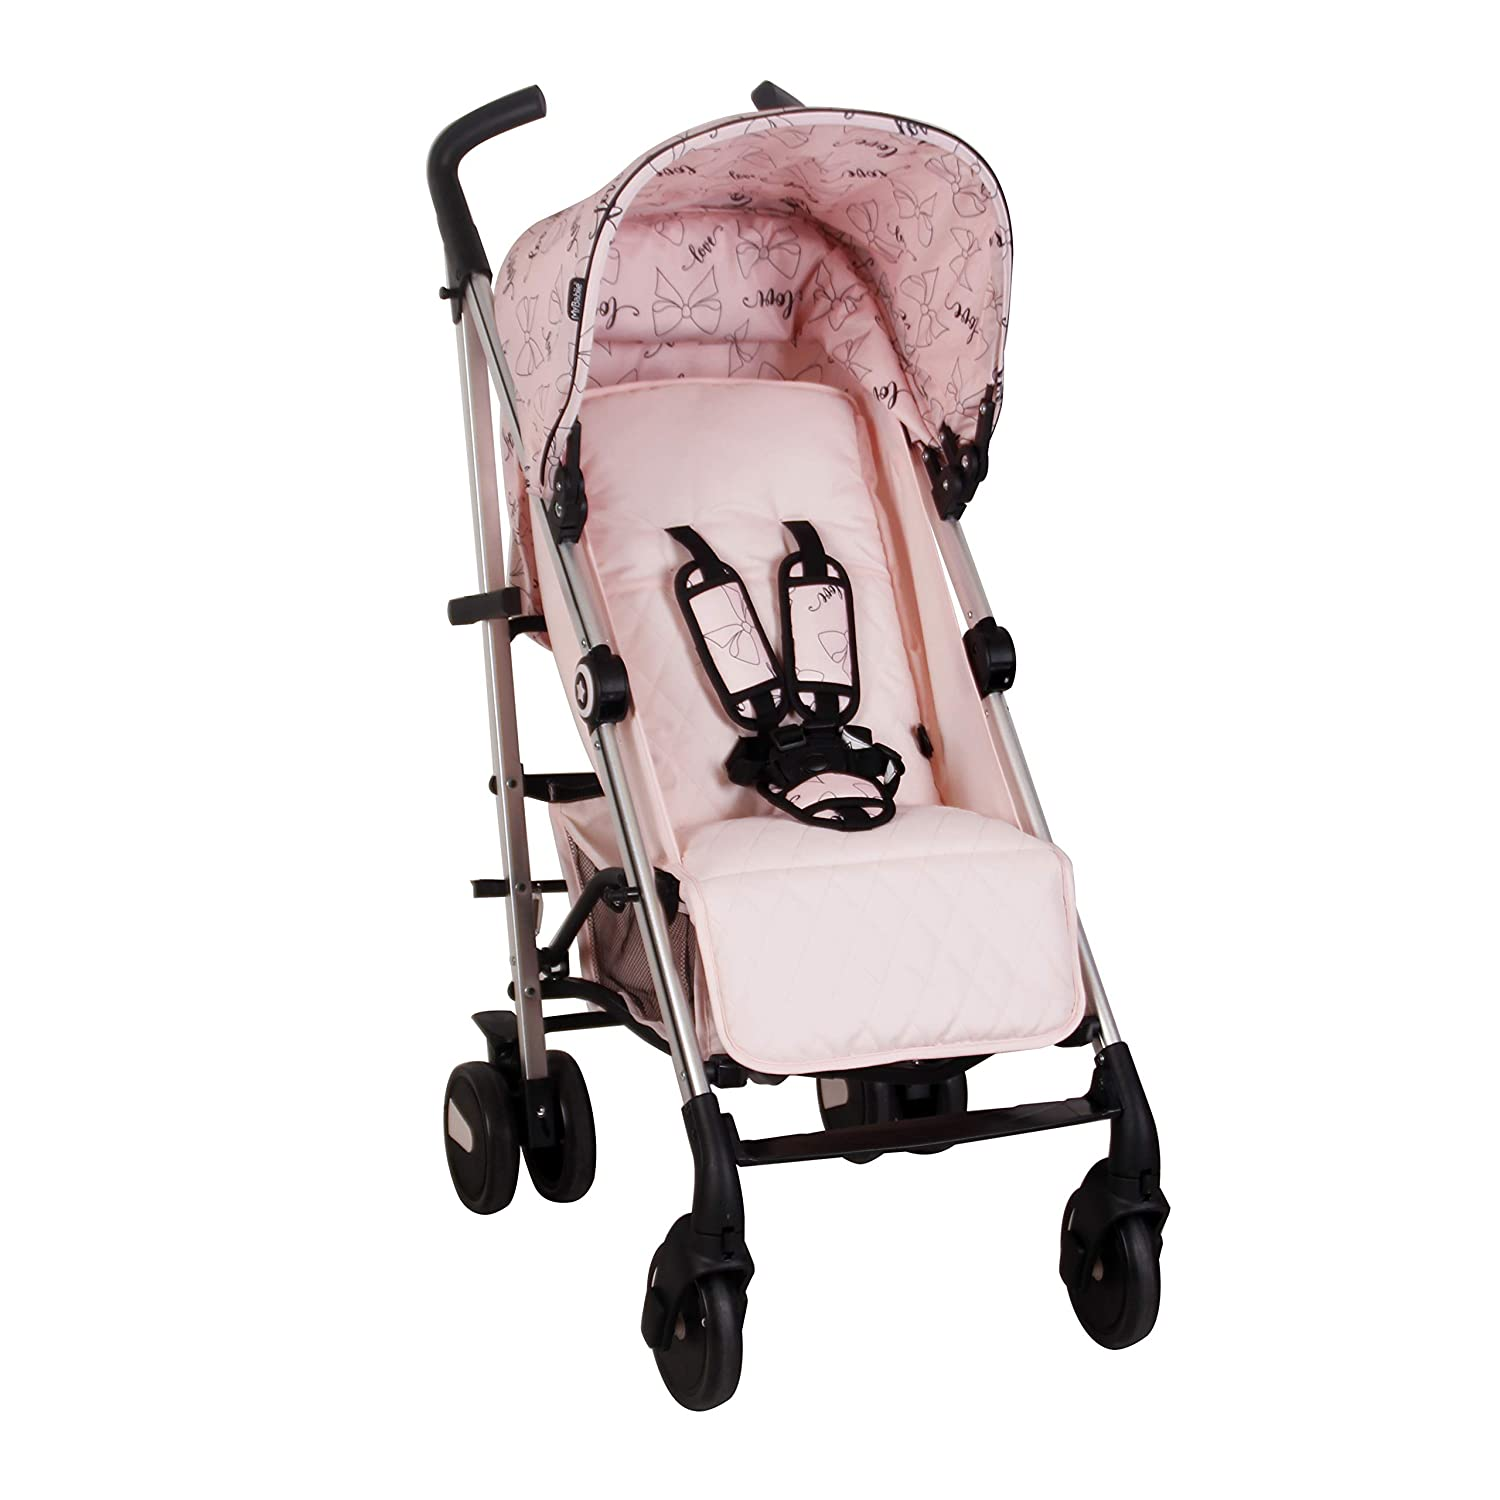 My Babiie US51 Catwalk Pink Bows Baby Stroller Lightweight Baby Stroller with Carry Handle Silver Frame and Pink Canopy with Bows Lightweight Travel Stroller Suitable from Birth 33lbs